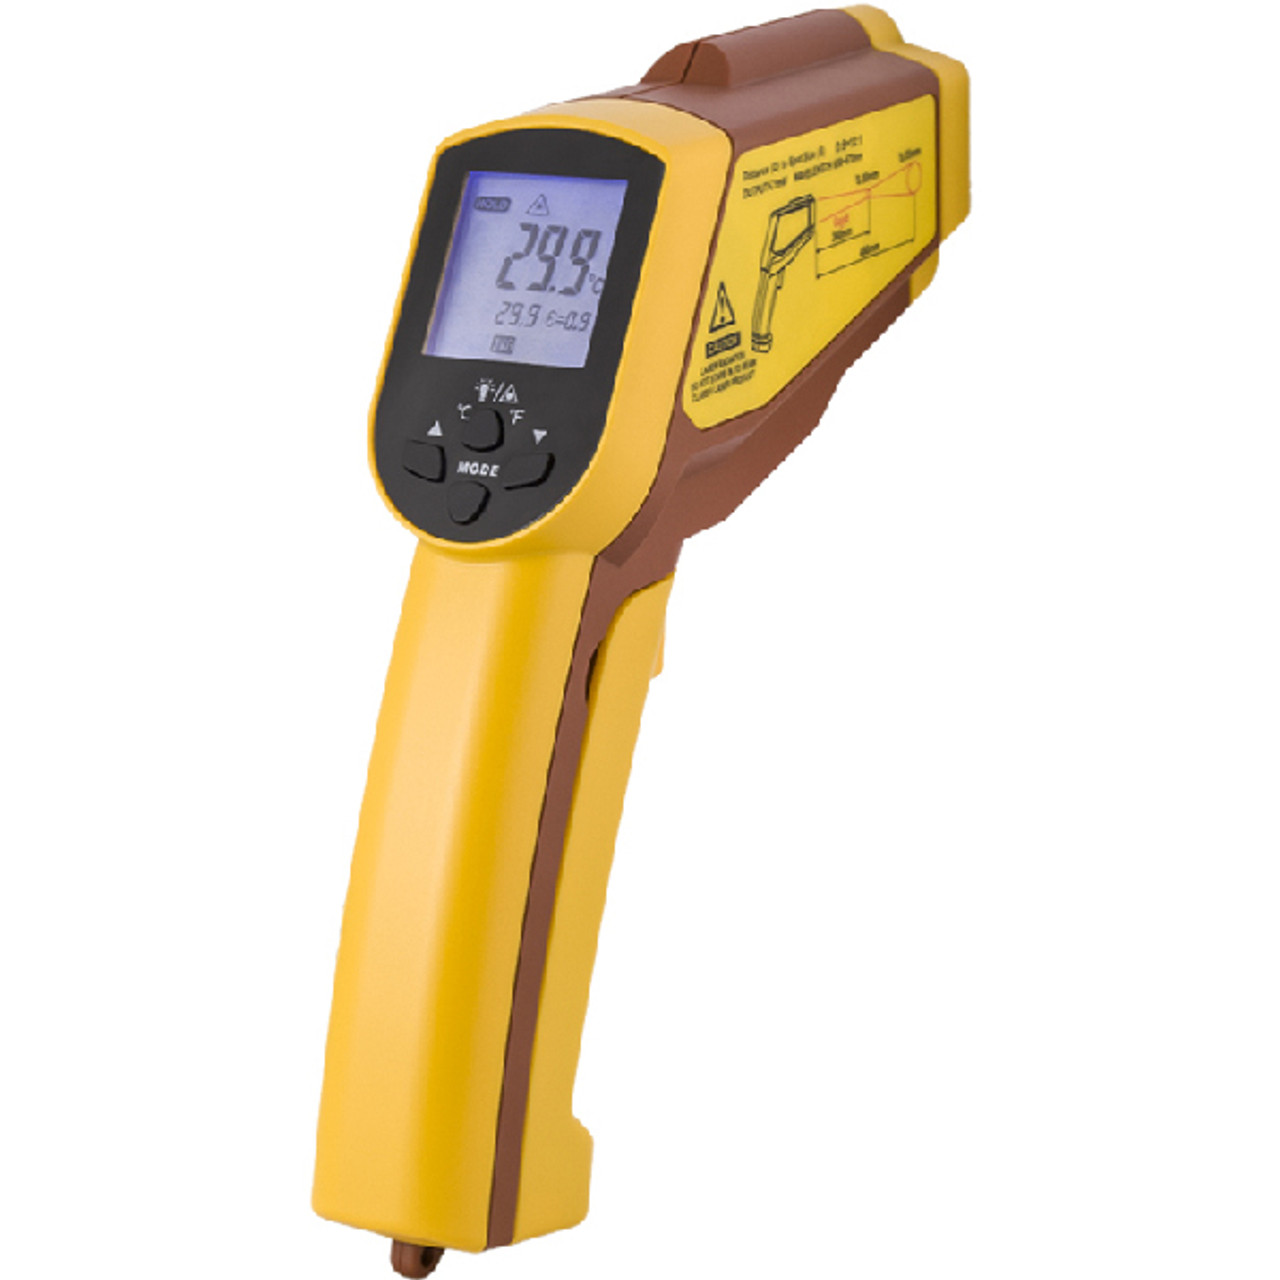 IR Gun | Purchase an Infrared Thermometer Gun With a -58 to 1102 ...